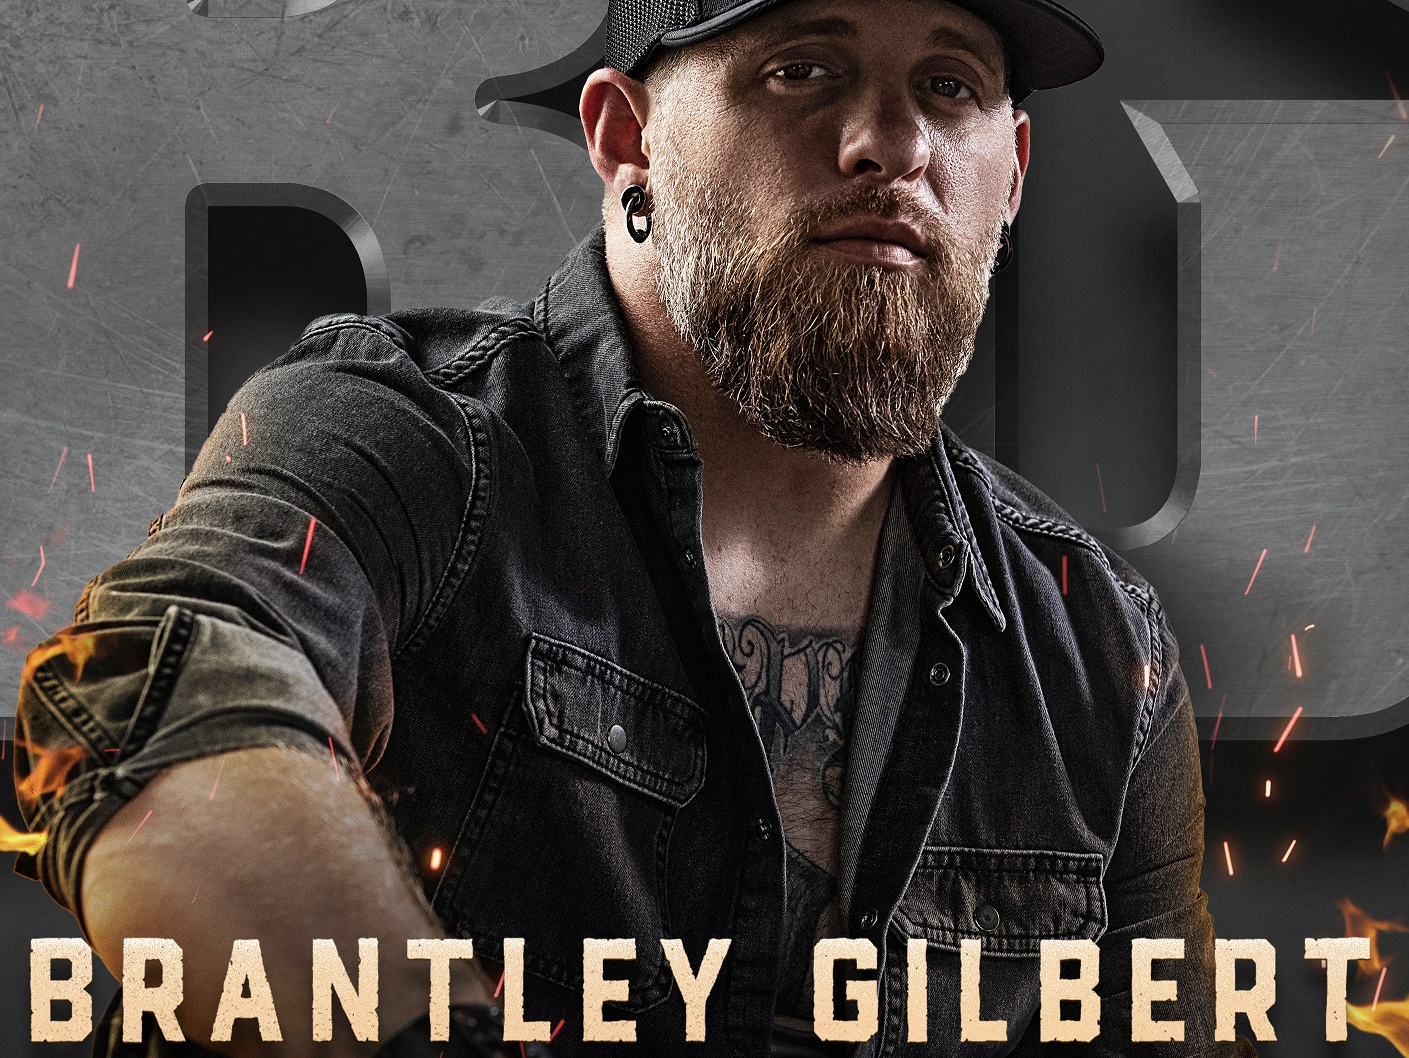 Brantley Gilbert is coming to Kat Country!